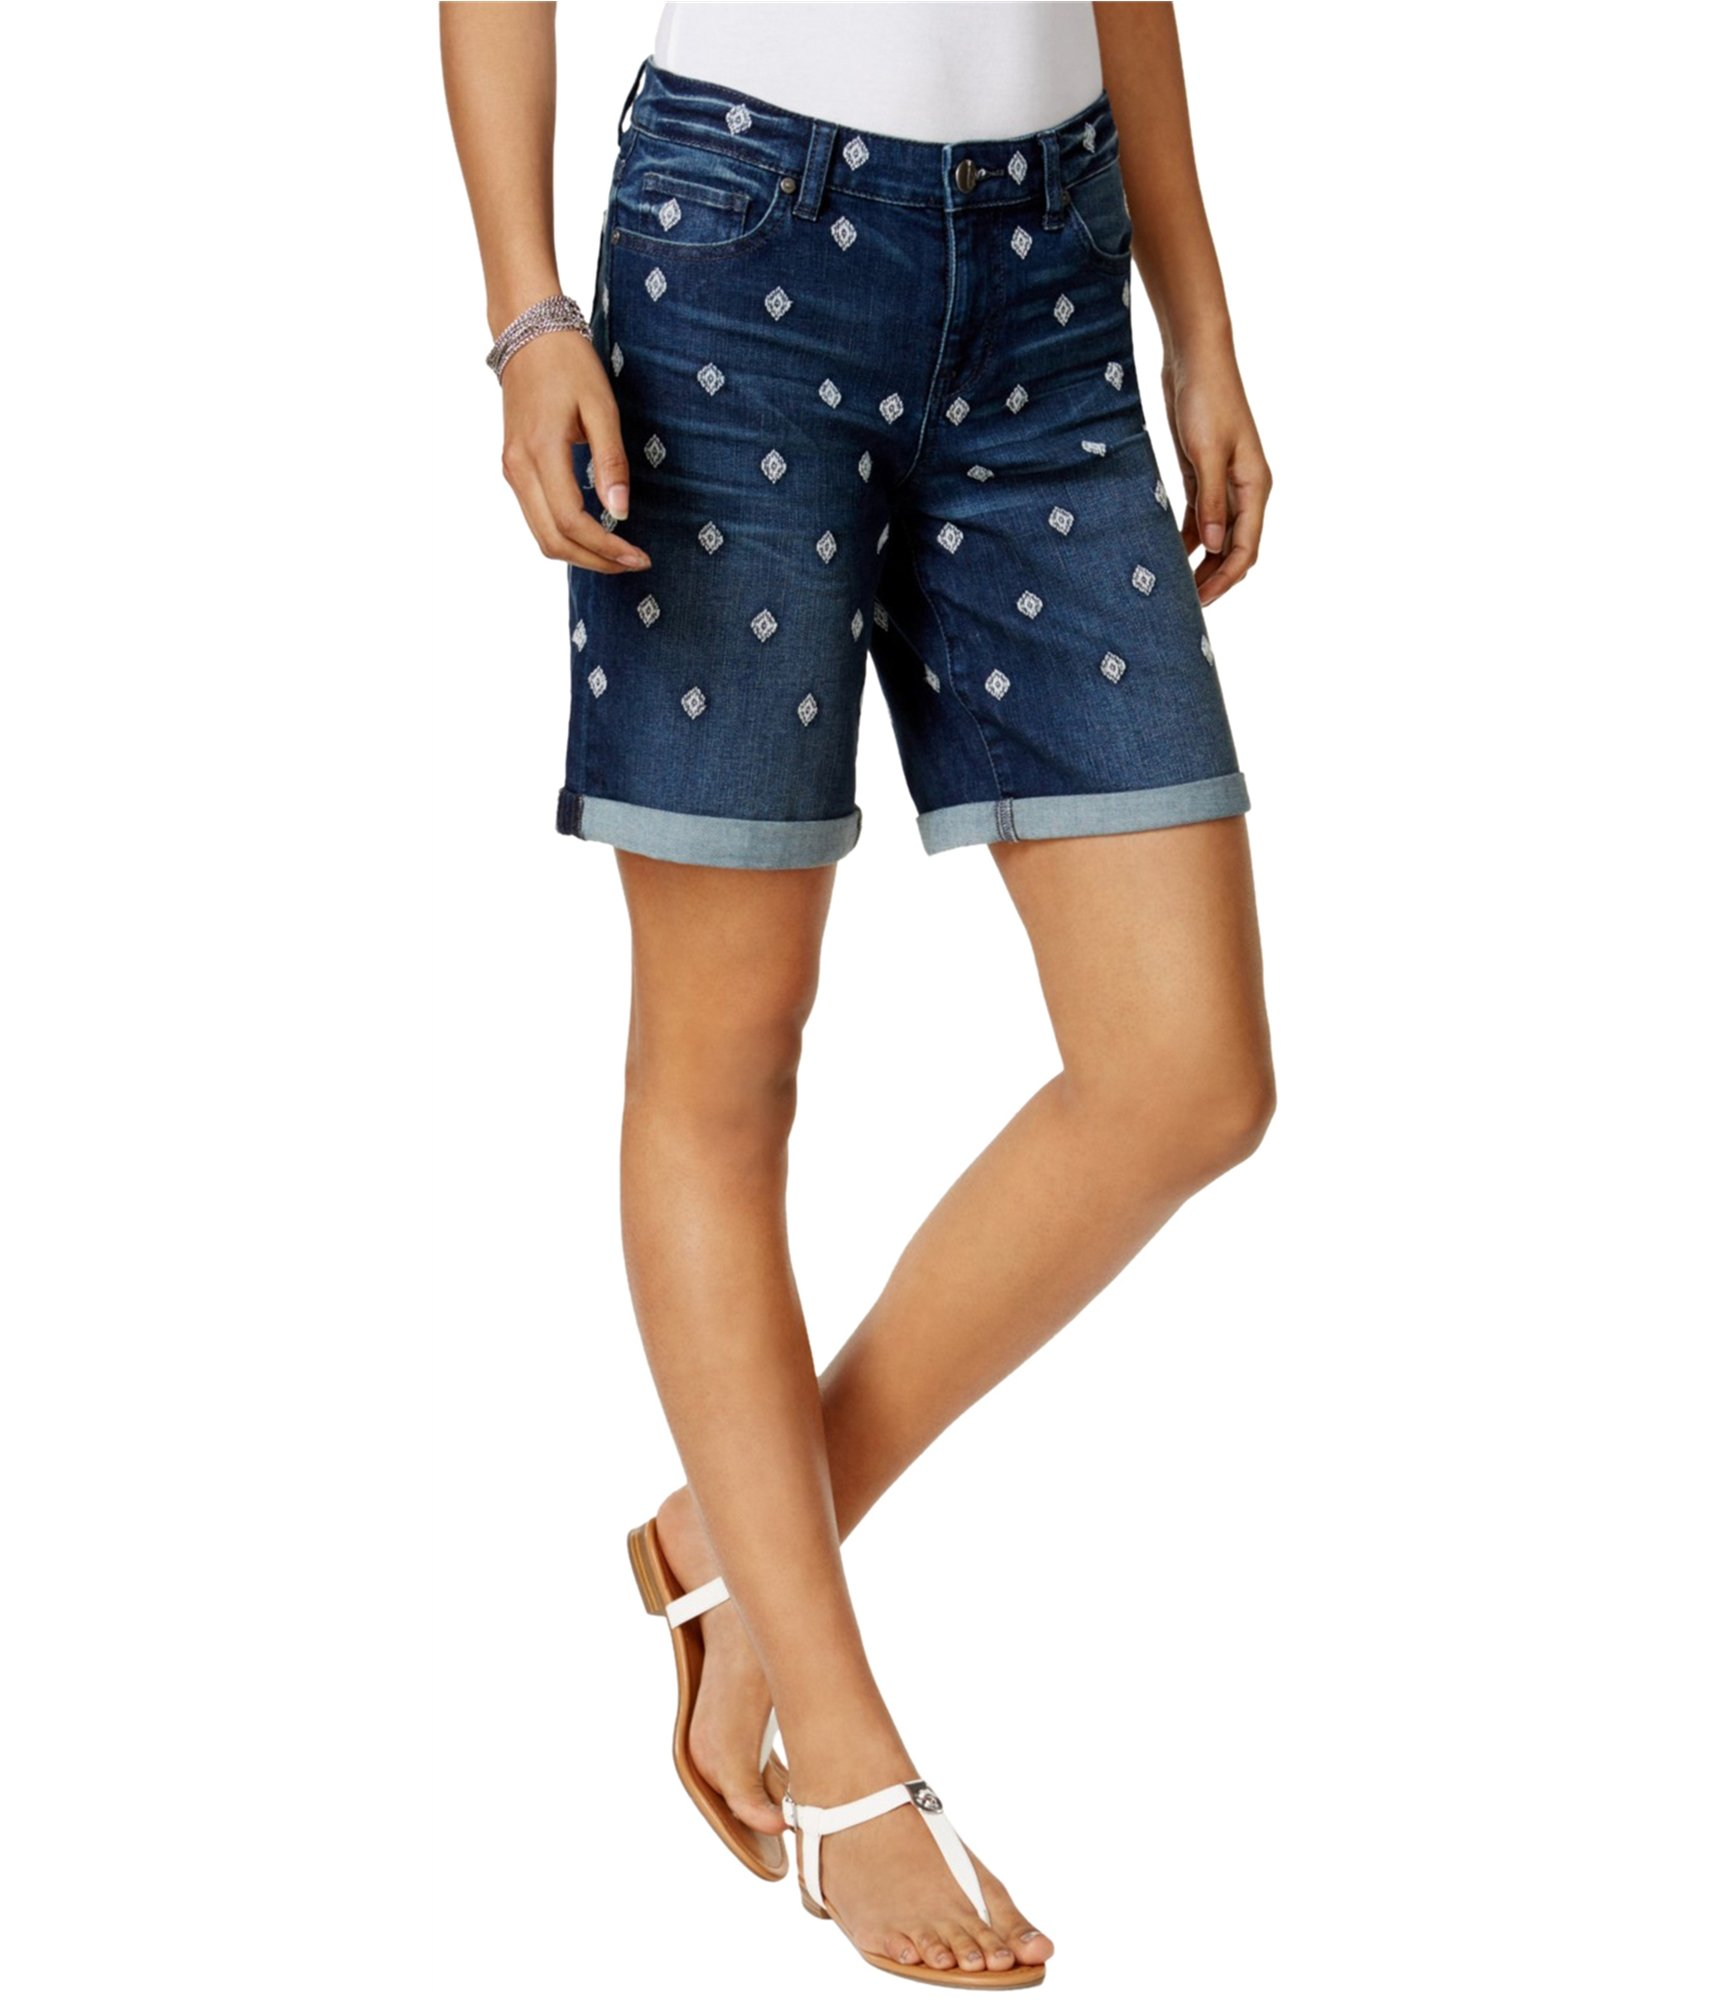 Style & Co.. Womens Embroidered Cuffed Denim Shorts Blue 4